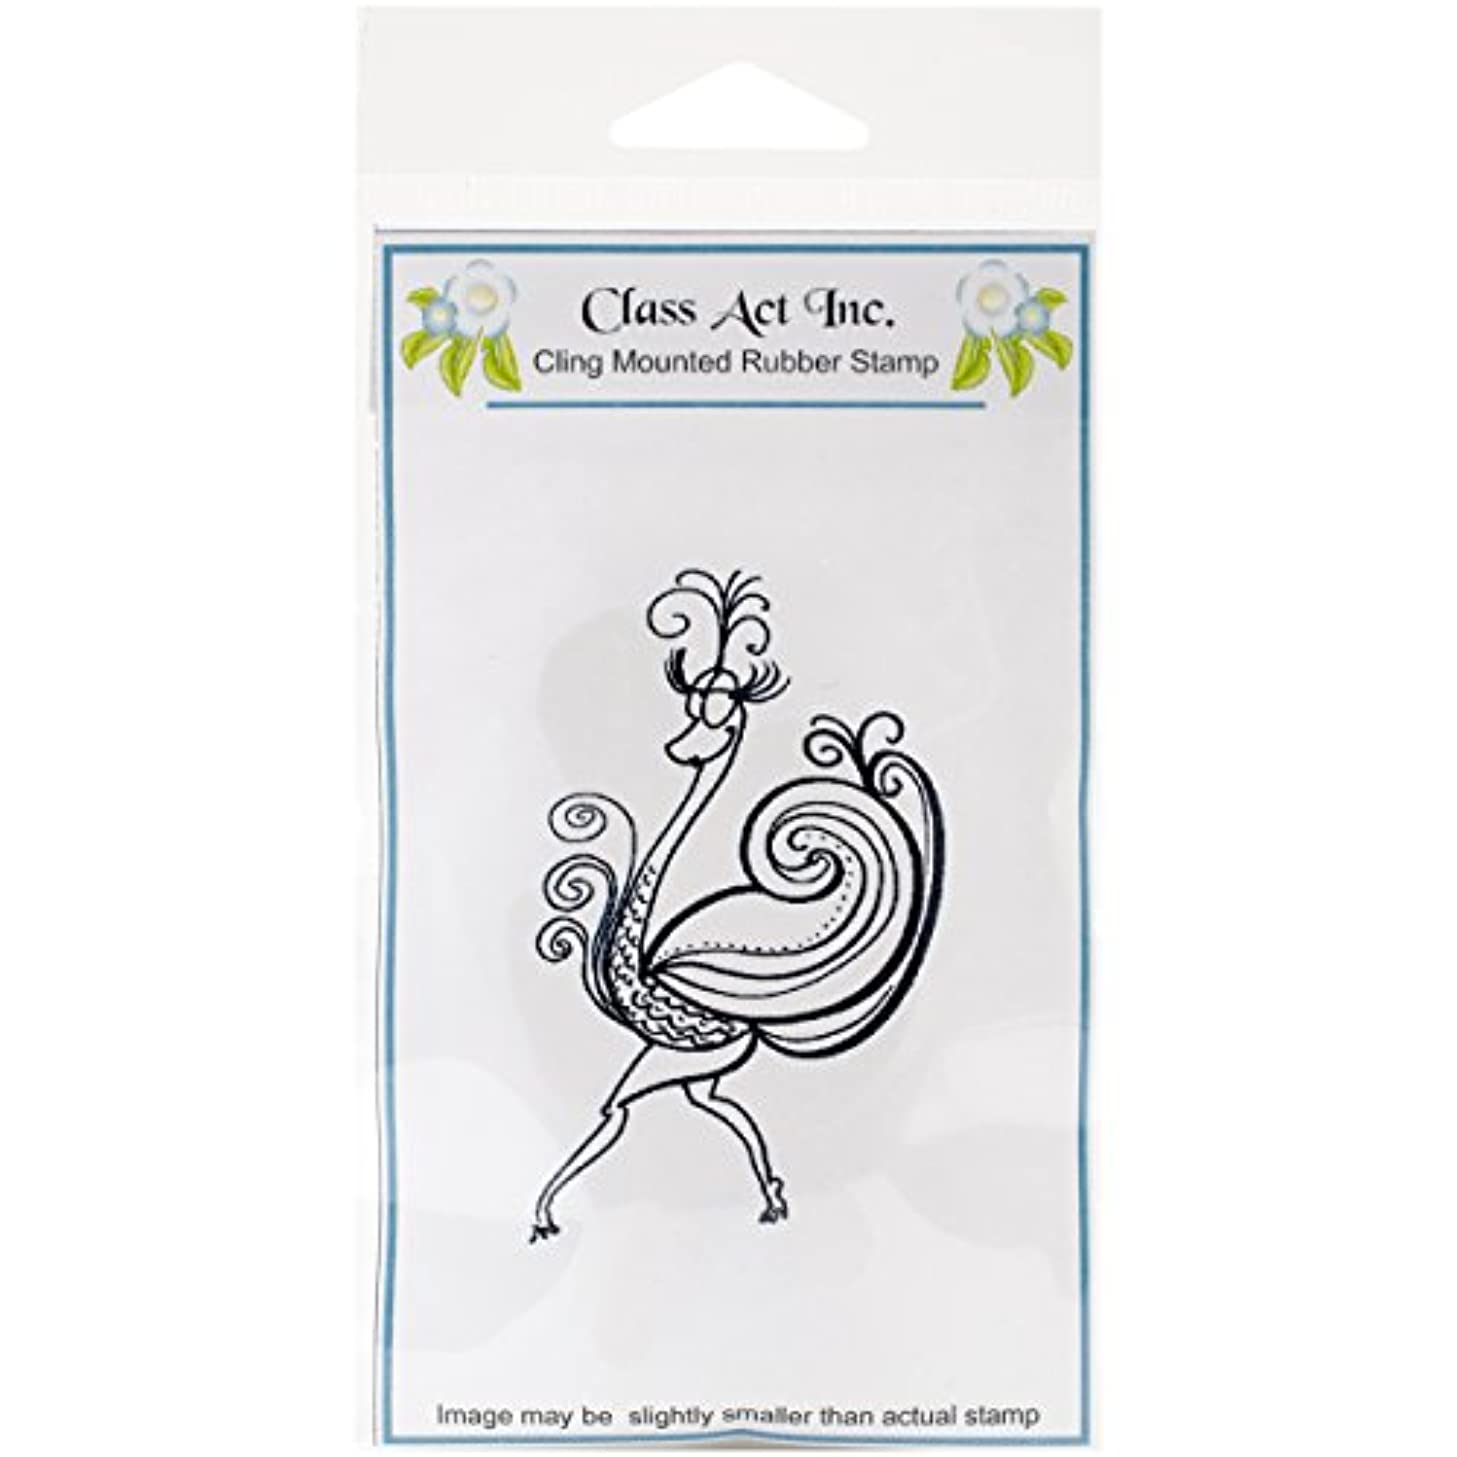 Class Act Cling Mounted Rubber Stamp, 3.25 by 5.5-Inch, Attitude Ostrich